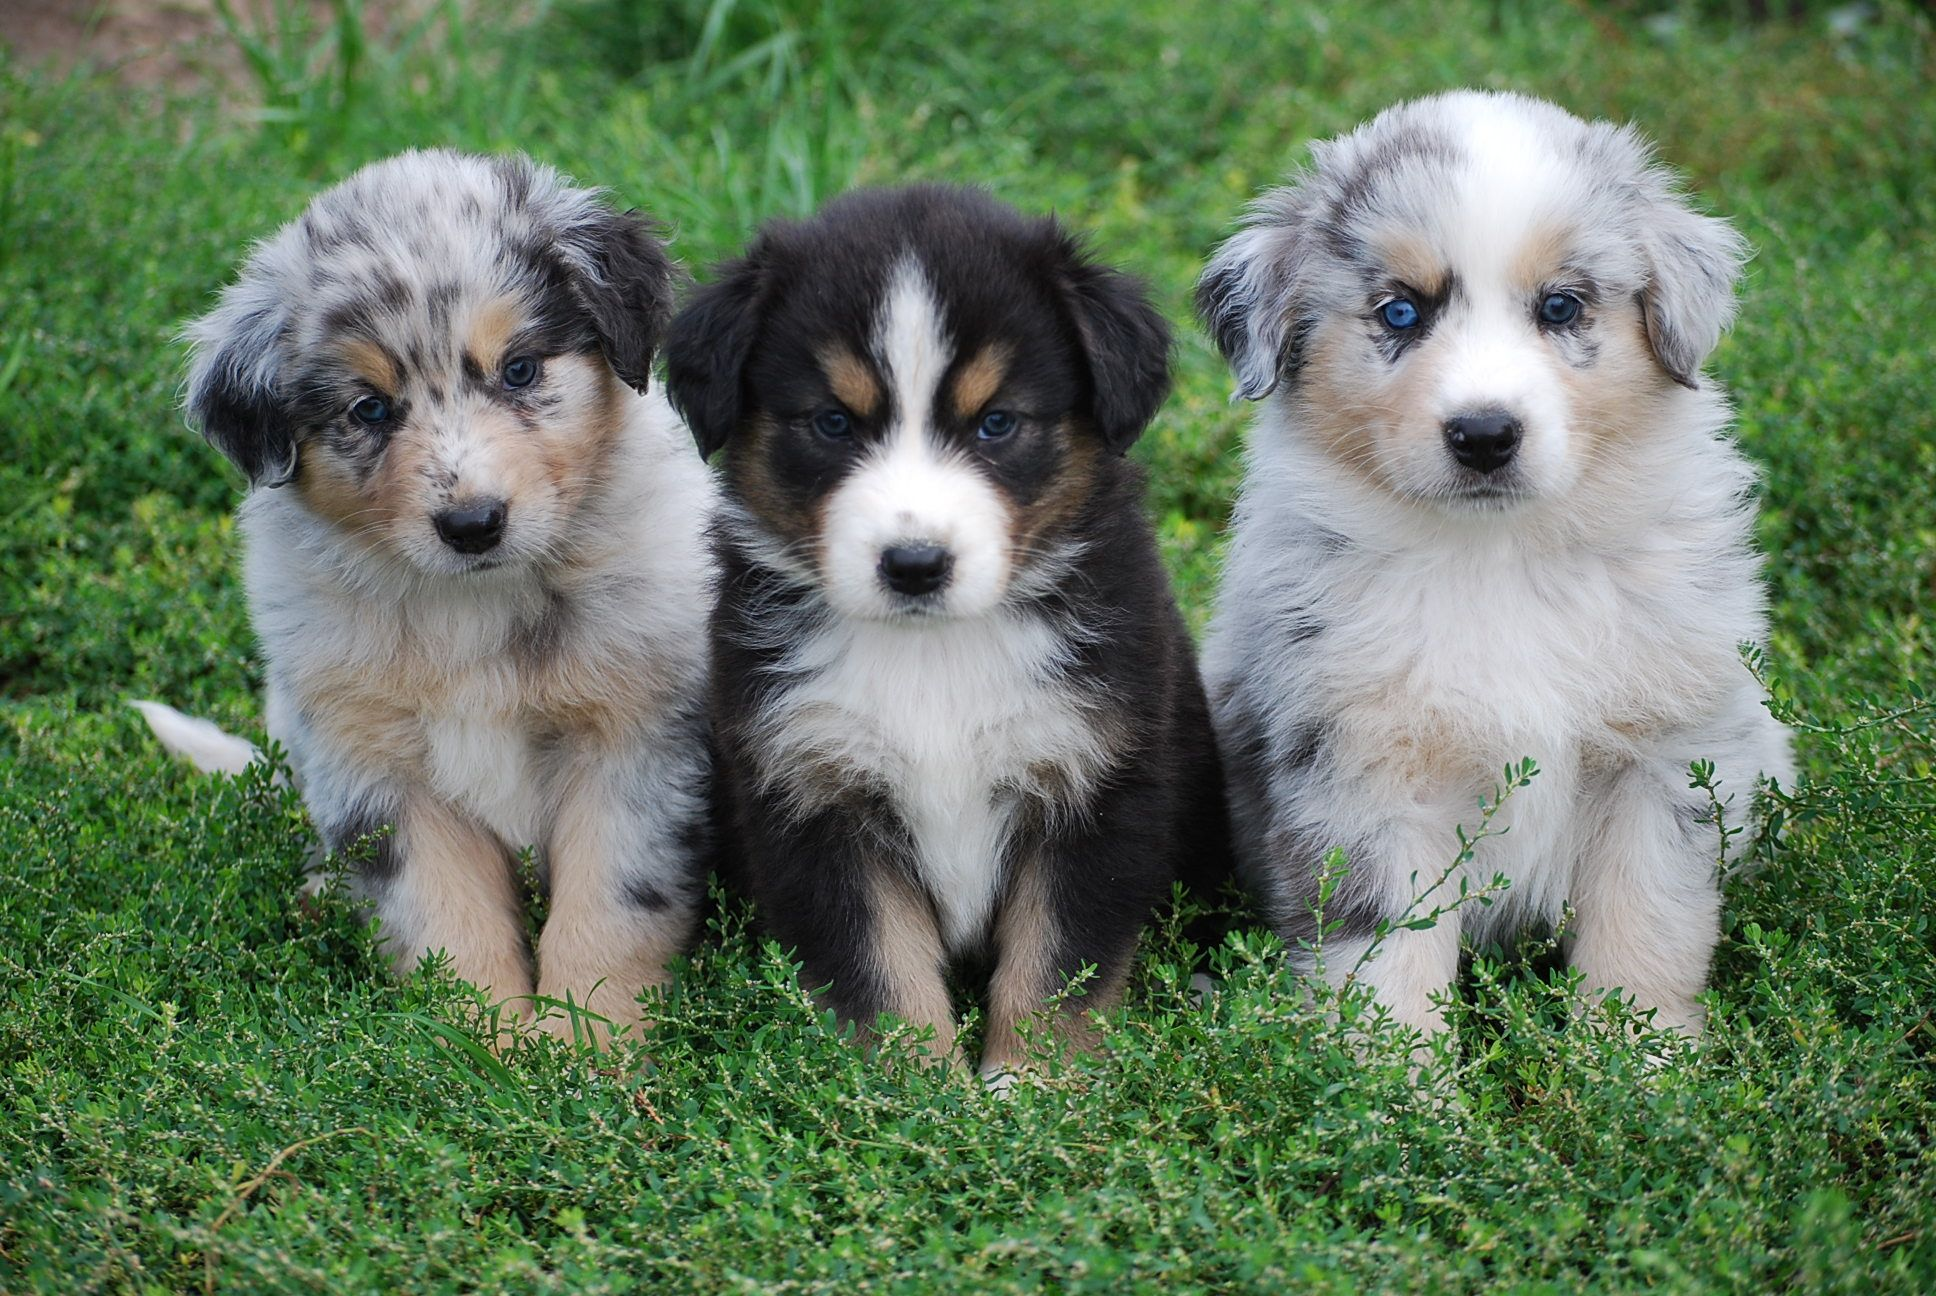 Common Health Problems Associated With Australian Shepherds Cute Baby Animals Dogs And Puppies Australian Shepherd Puppies